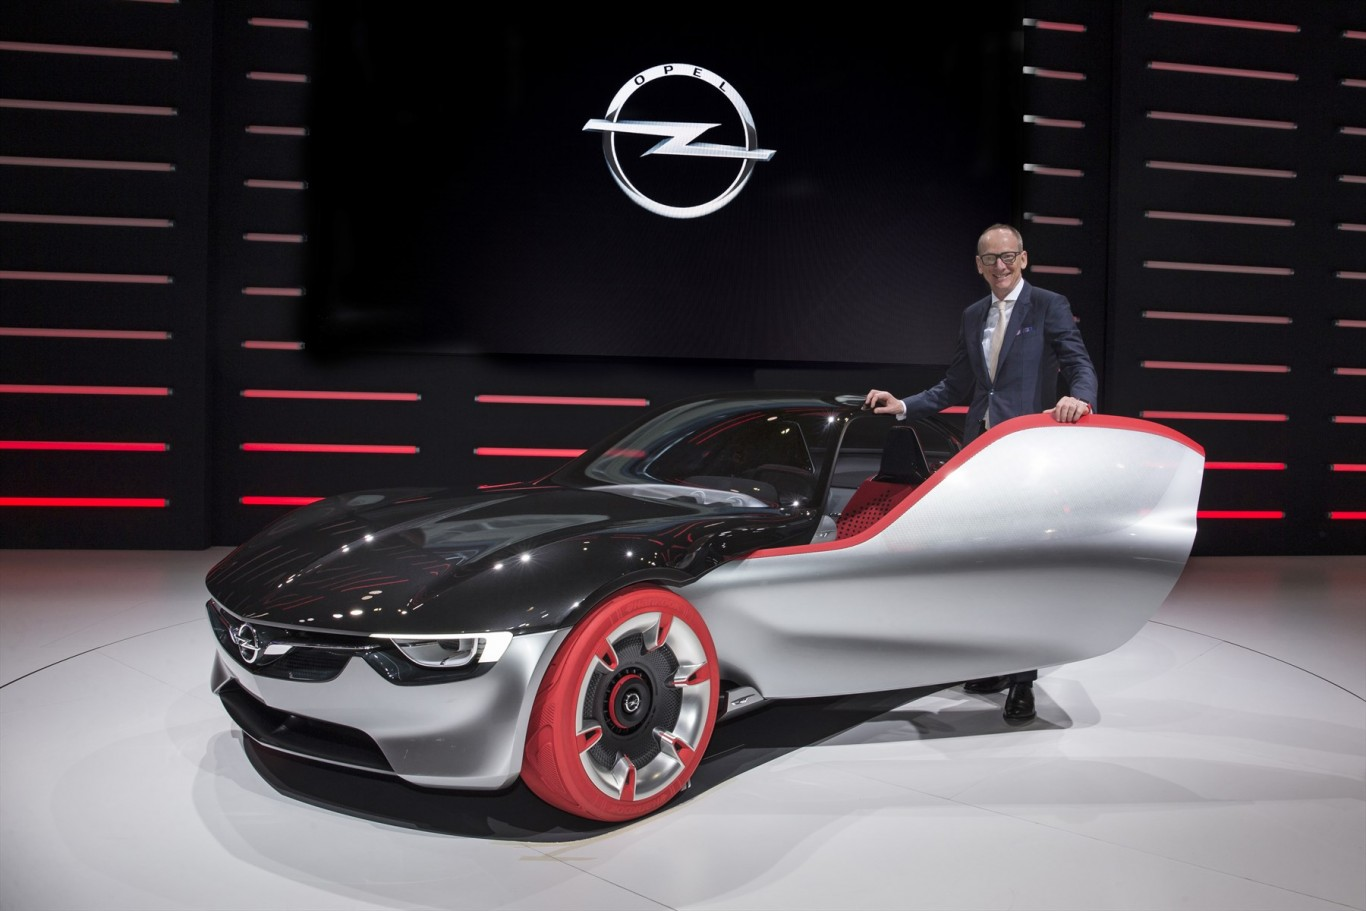 Opel at the Geneva Motor Show: